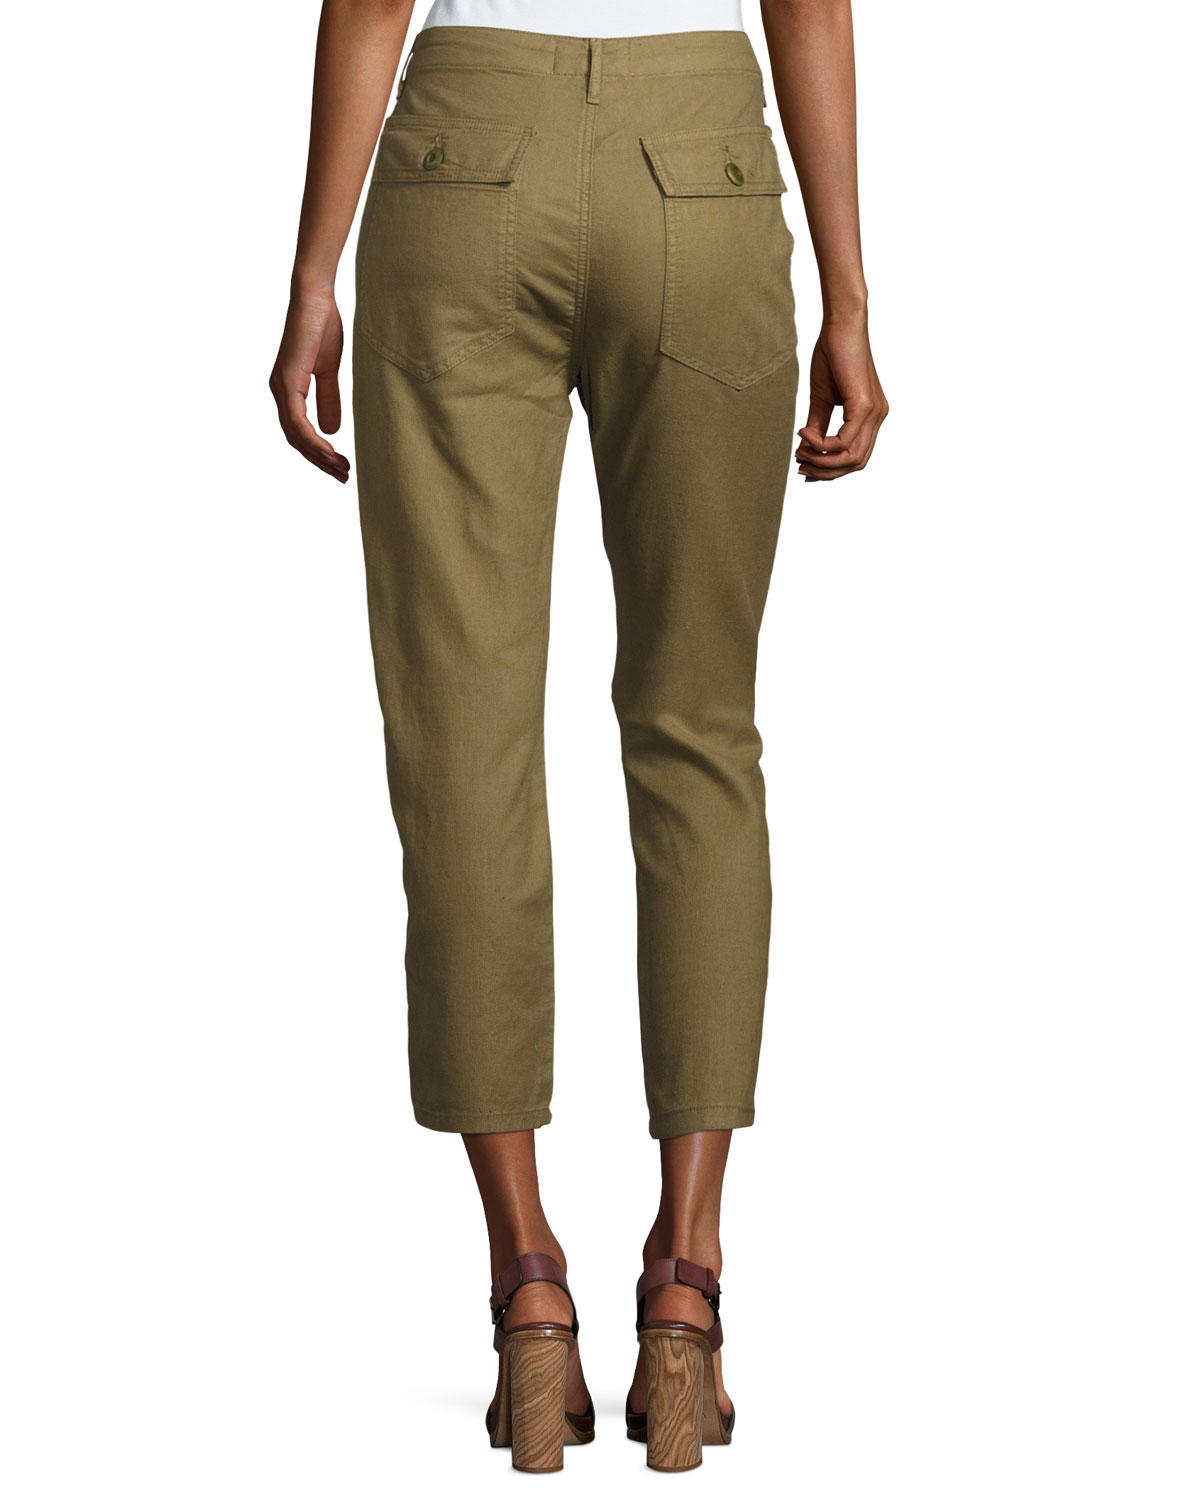 The Great The Slouch Army Cargo Pants Olive Neiman Marcus